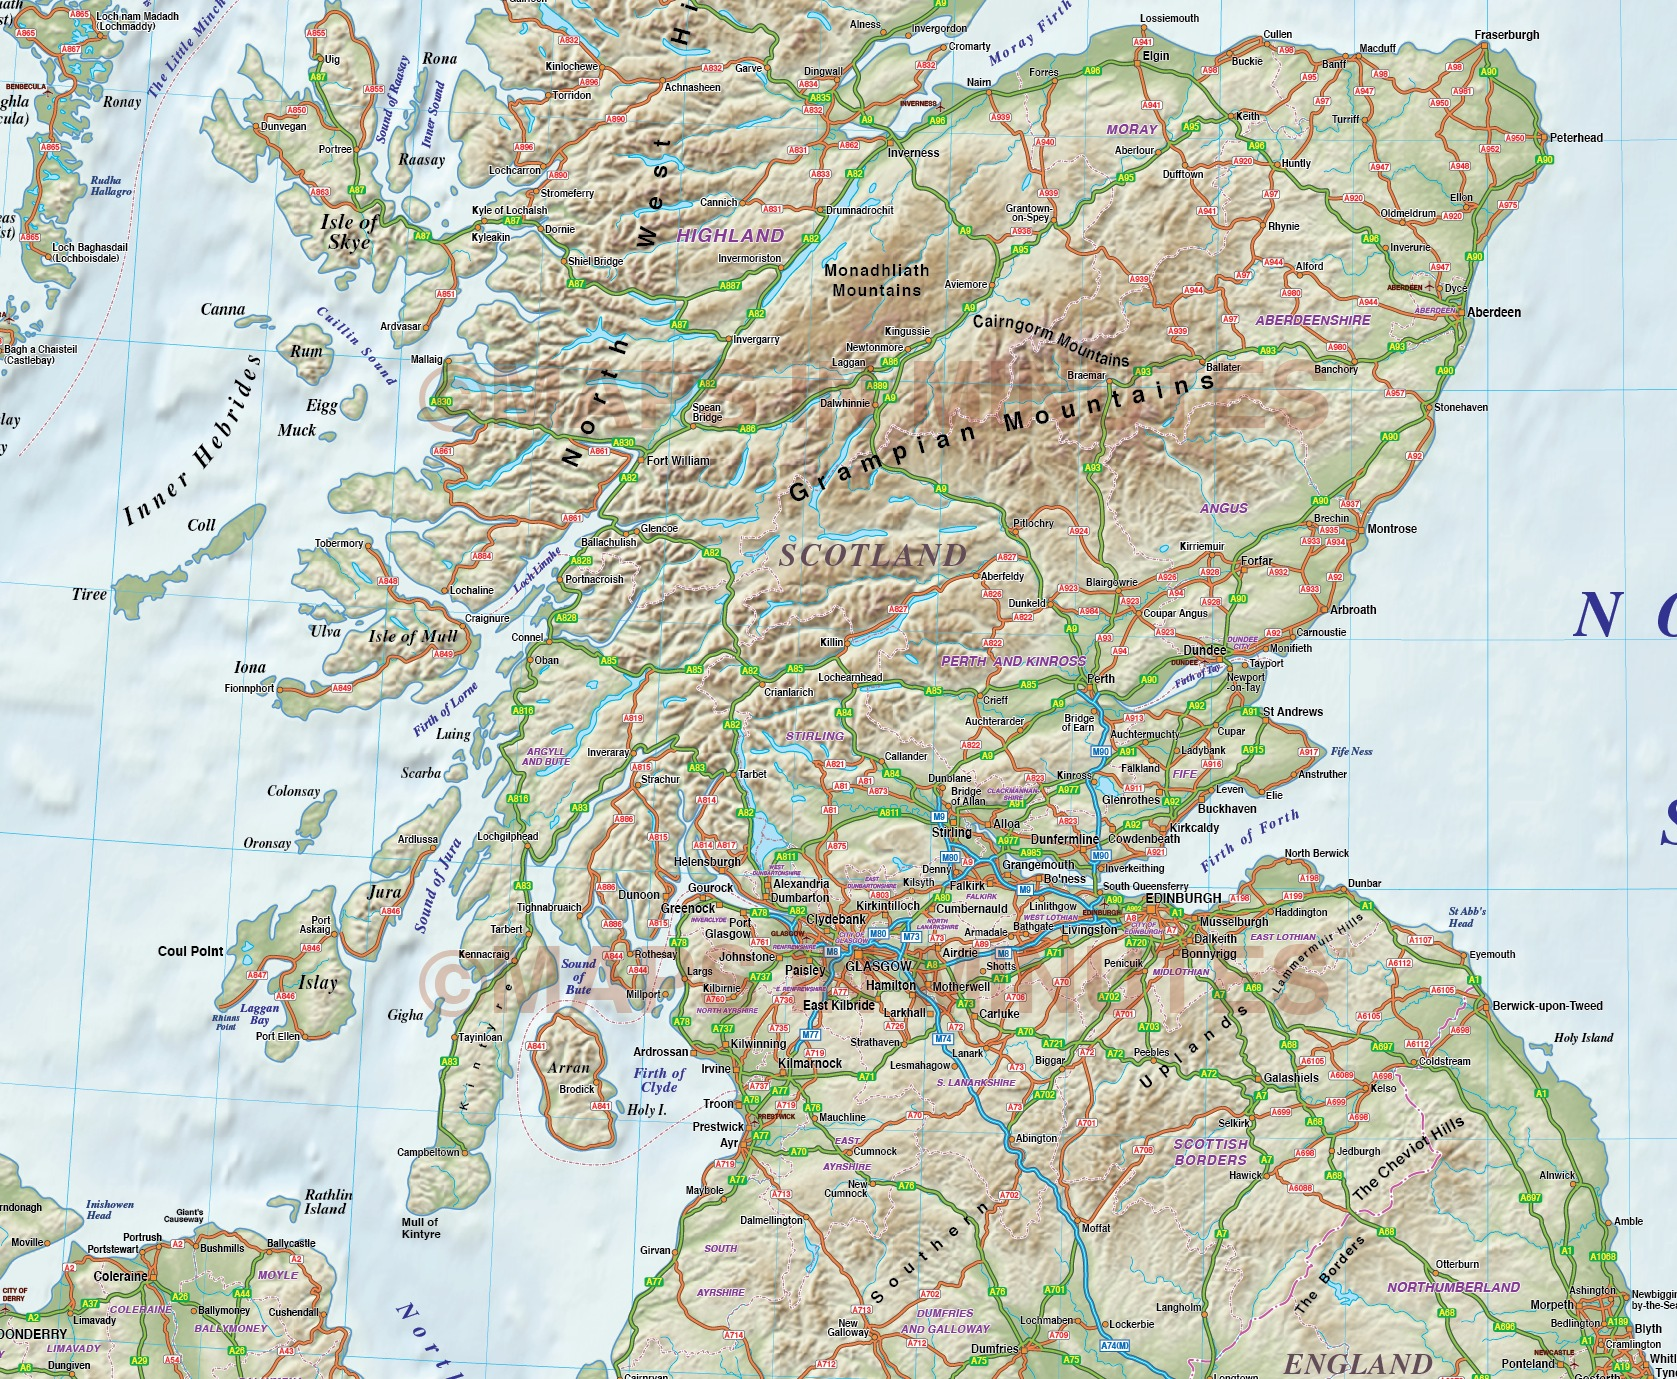 Vector Scotland Regions Road Map With 600dpi High